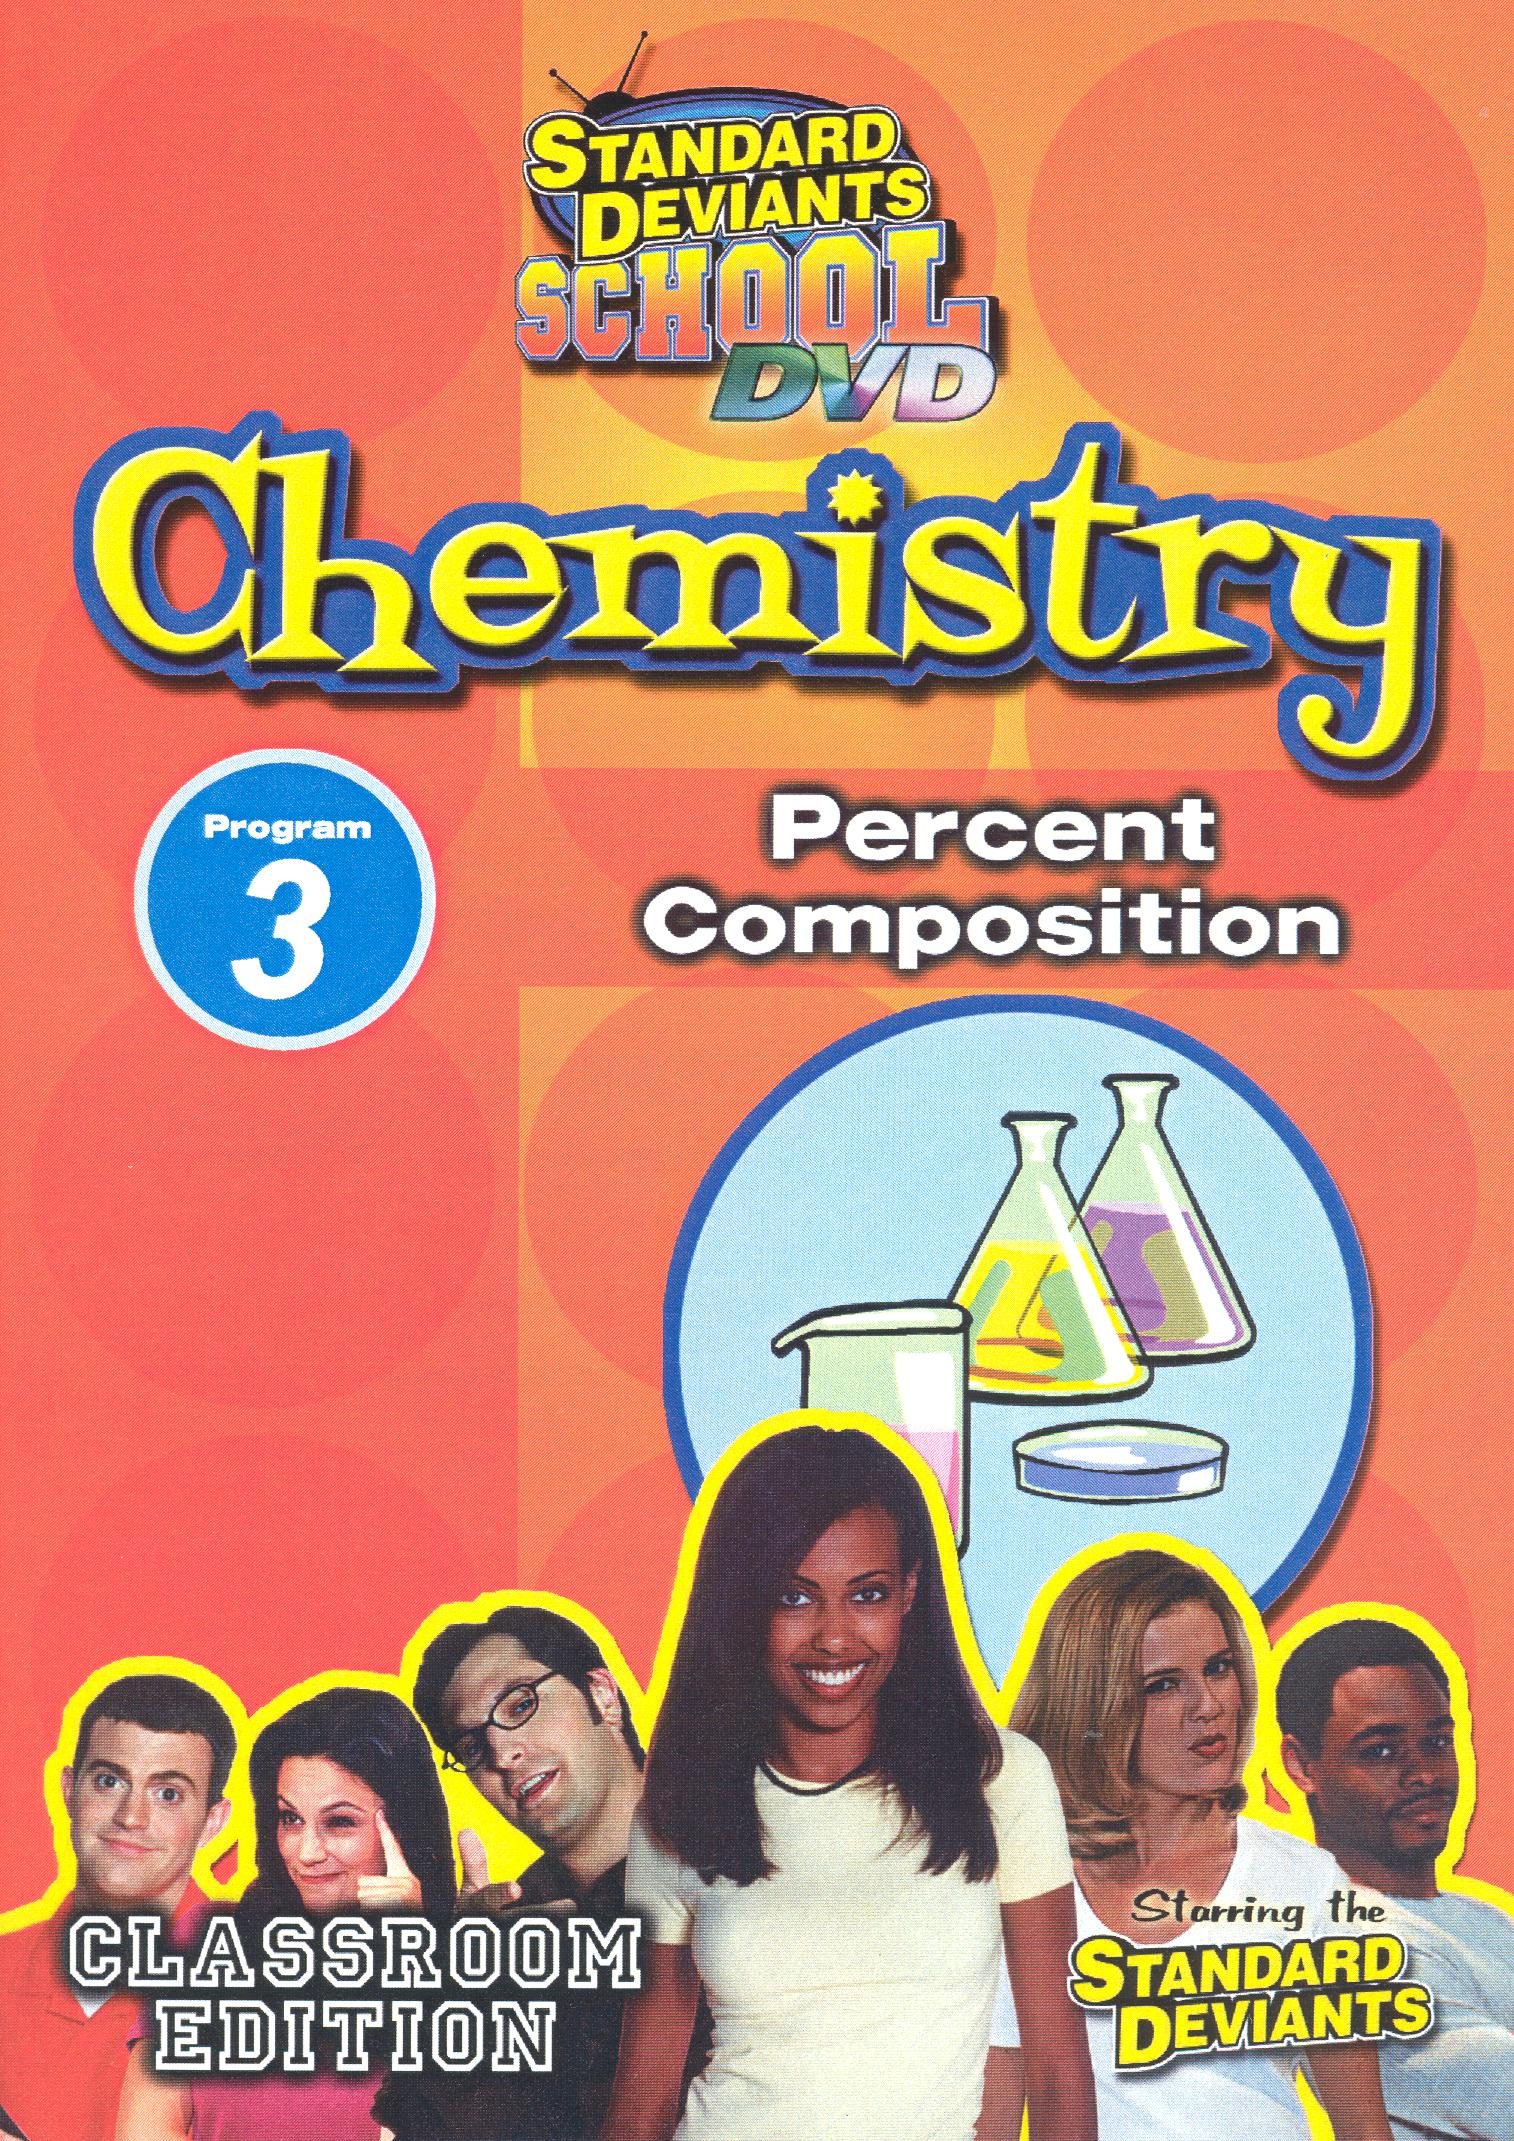 Standard Deviants School: Chemistry, Program 3